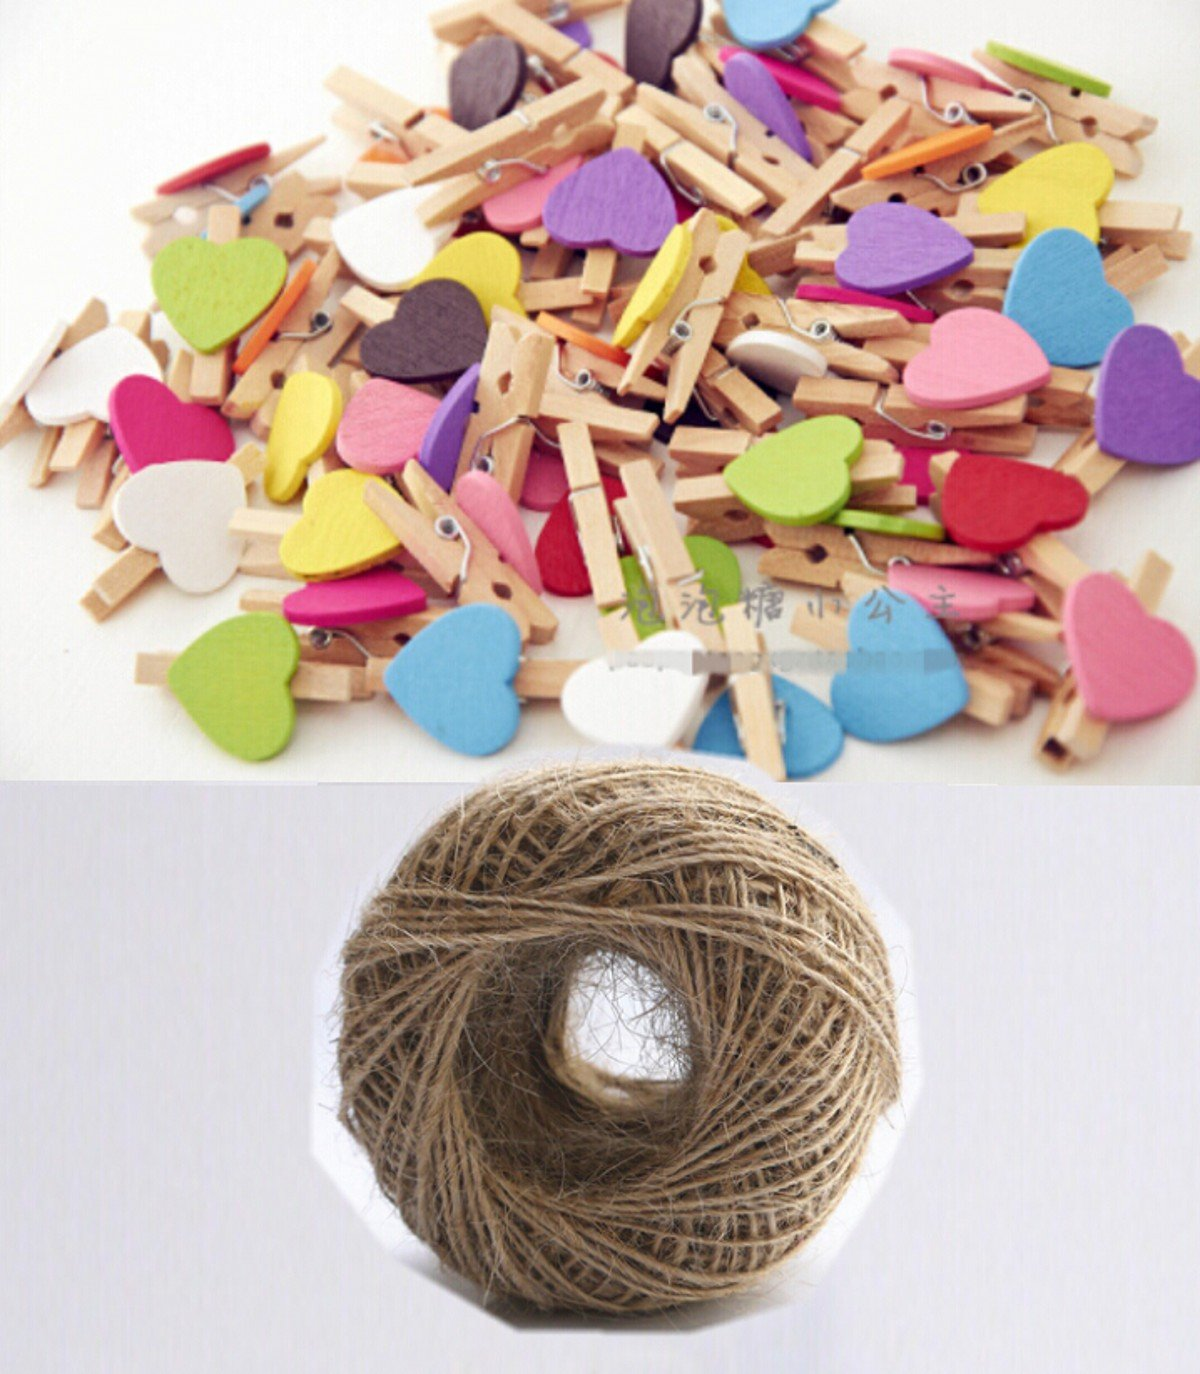 100 Pcs 30mm Crafts Heart Wooden Mini Clothespins 100 pieces and Jute Cord 164ft